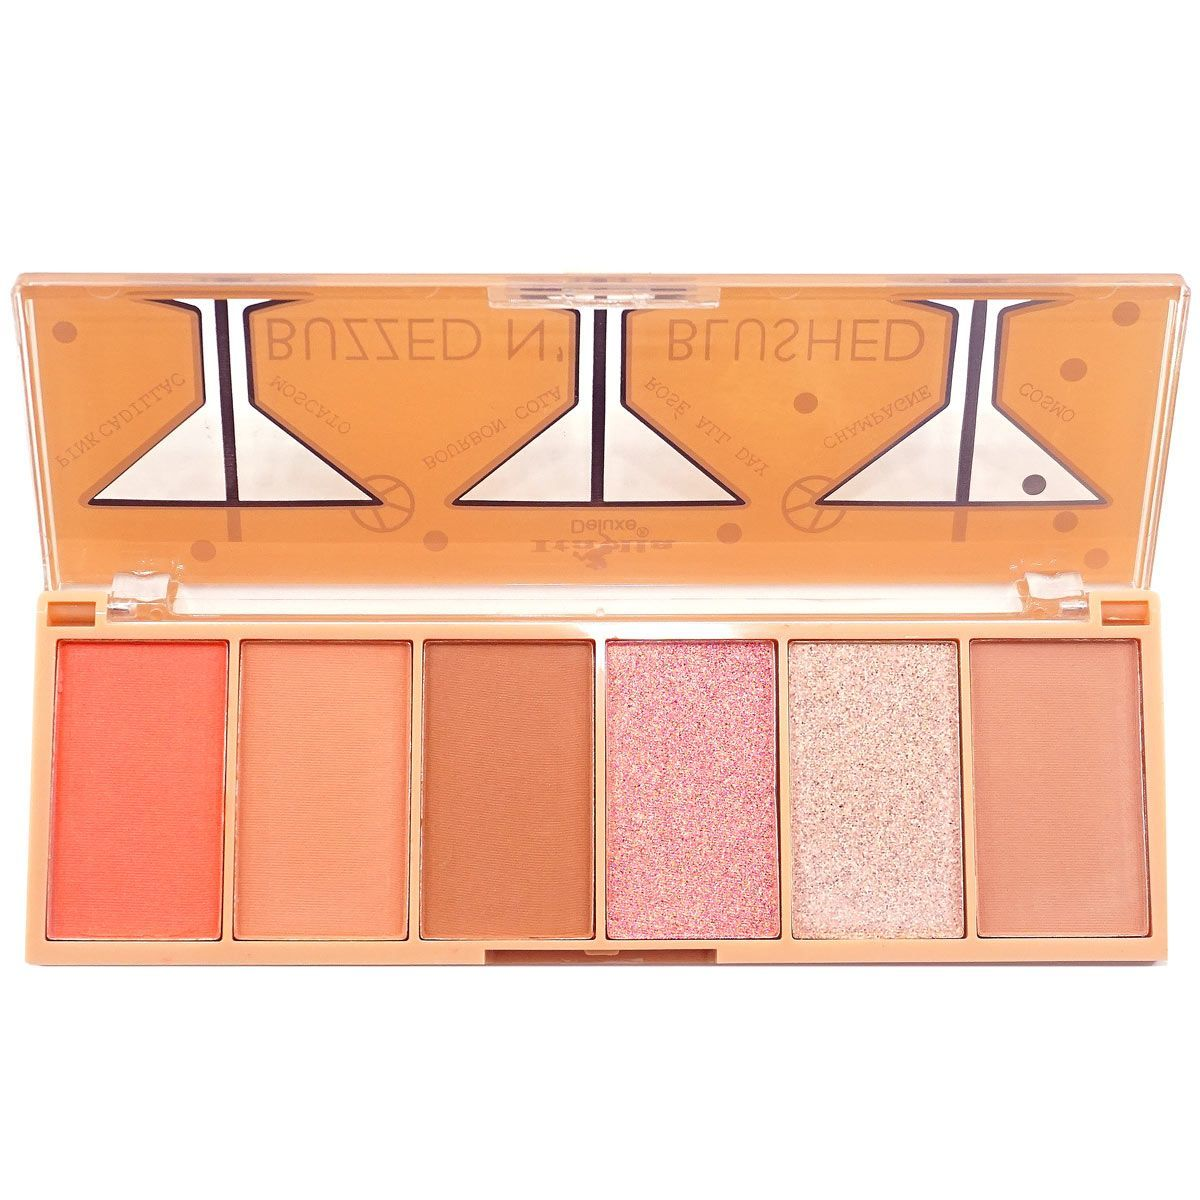 ITA-3006-1 : Buzzed N' Blushed-Blush & Highlighter Palette 1 DZ